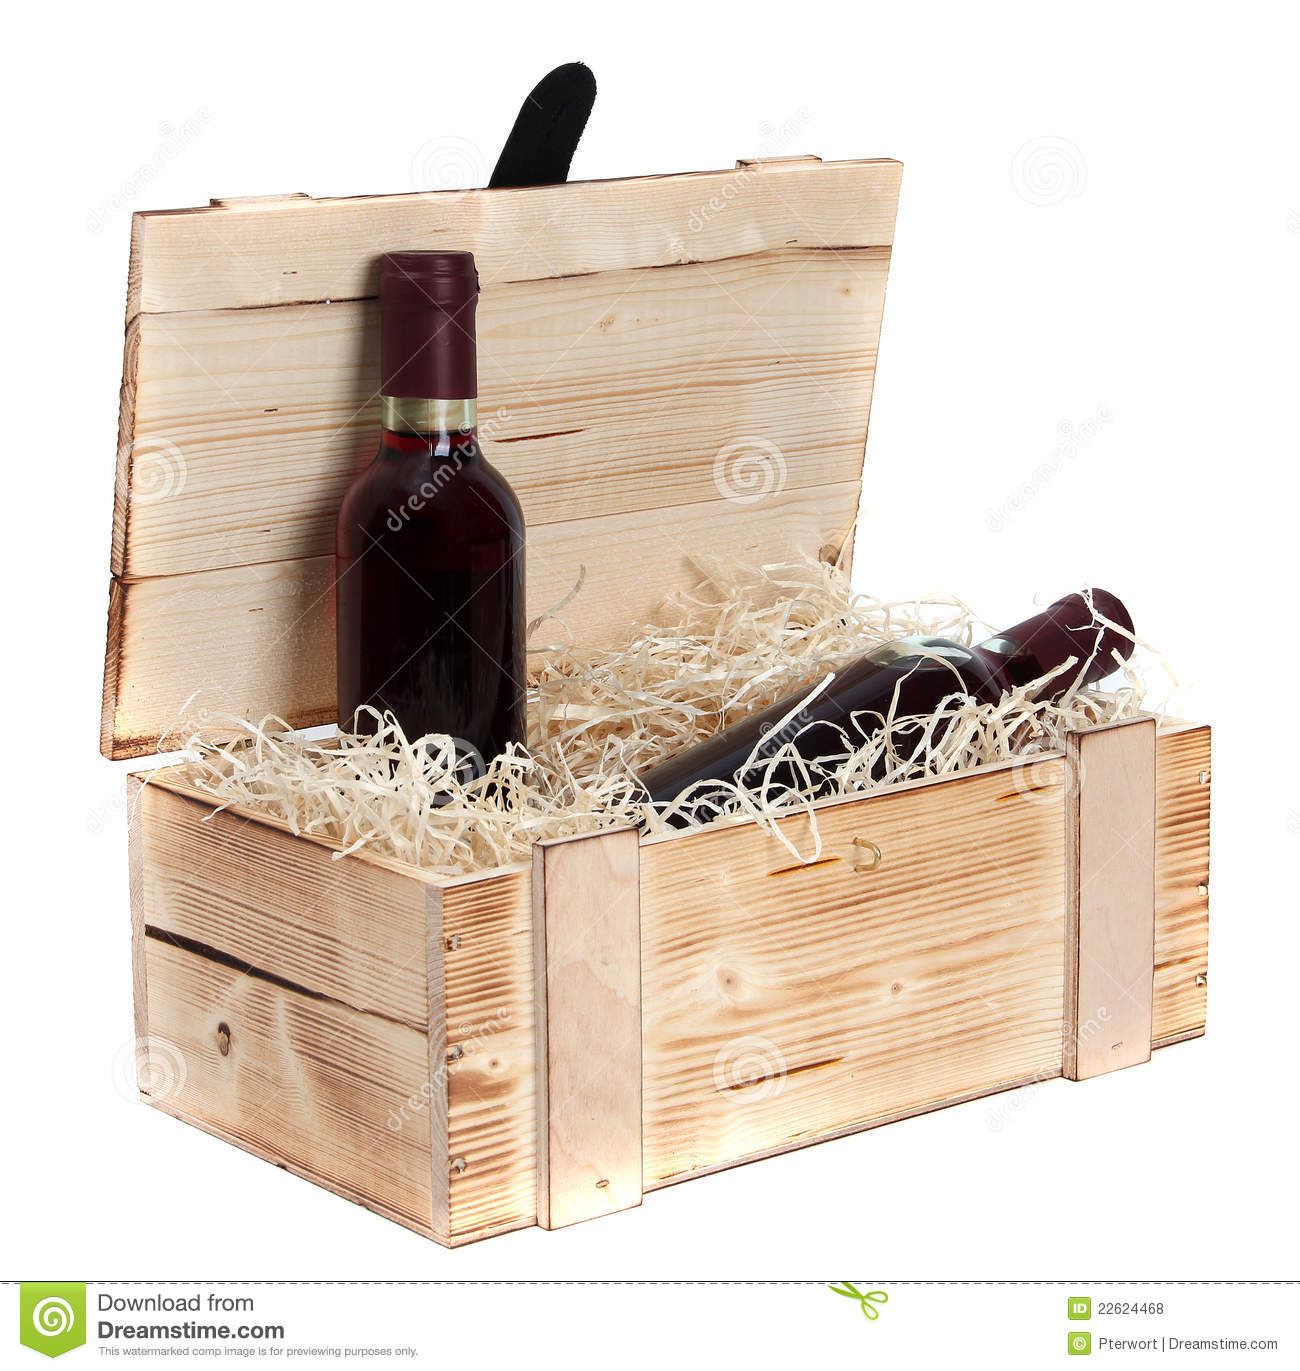 Wooden wine case Petrus Wooden Case With Two Bottles Of Red Wine Dreamstimecom Wooden Case With Two Bottles Of Red Wine Stock Photo Image Of